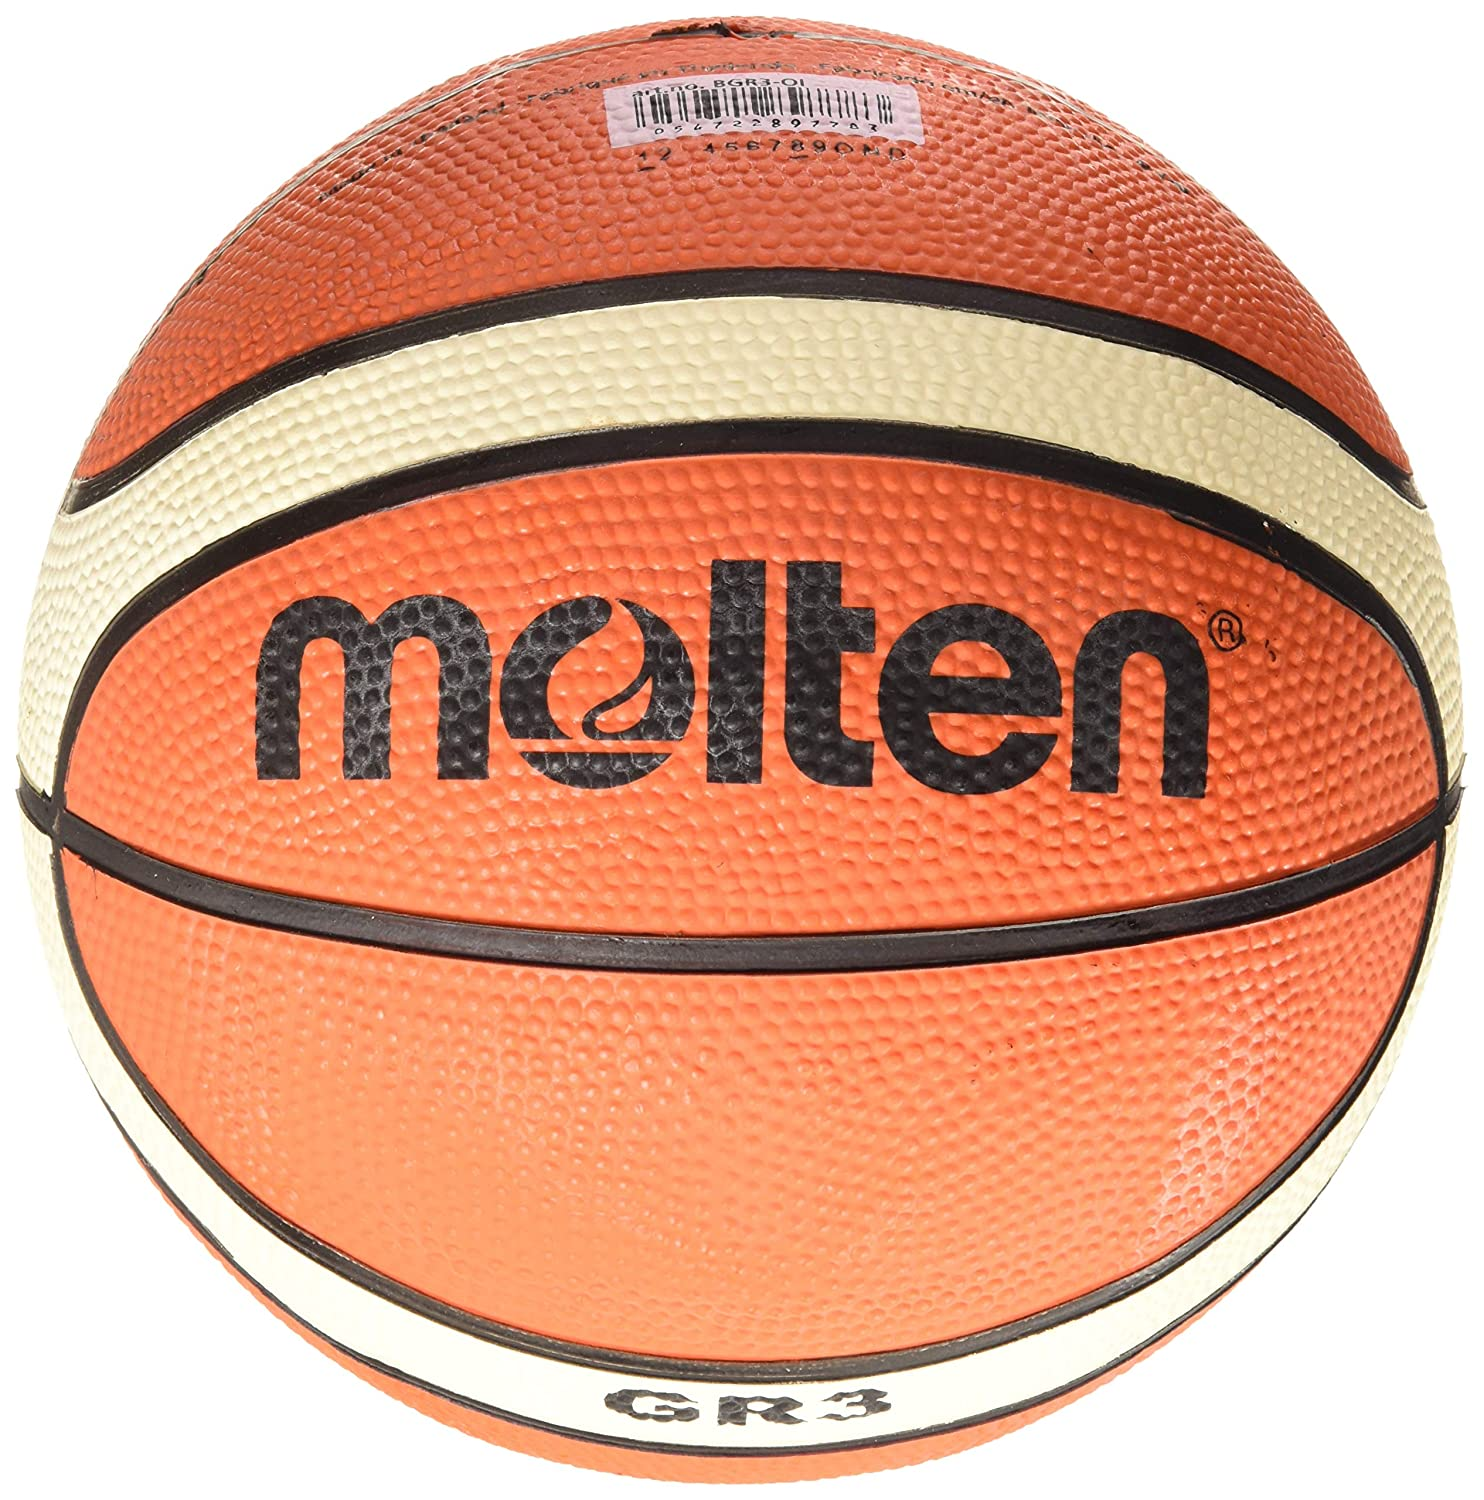 MOLTEN BGR-Oi Mark 2 Baloncesto - Tan, 3 tamaño: Amazon.es ...